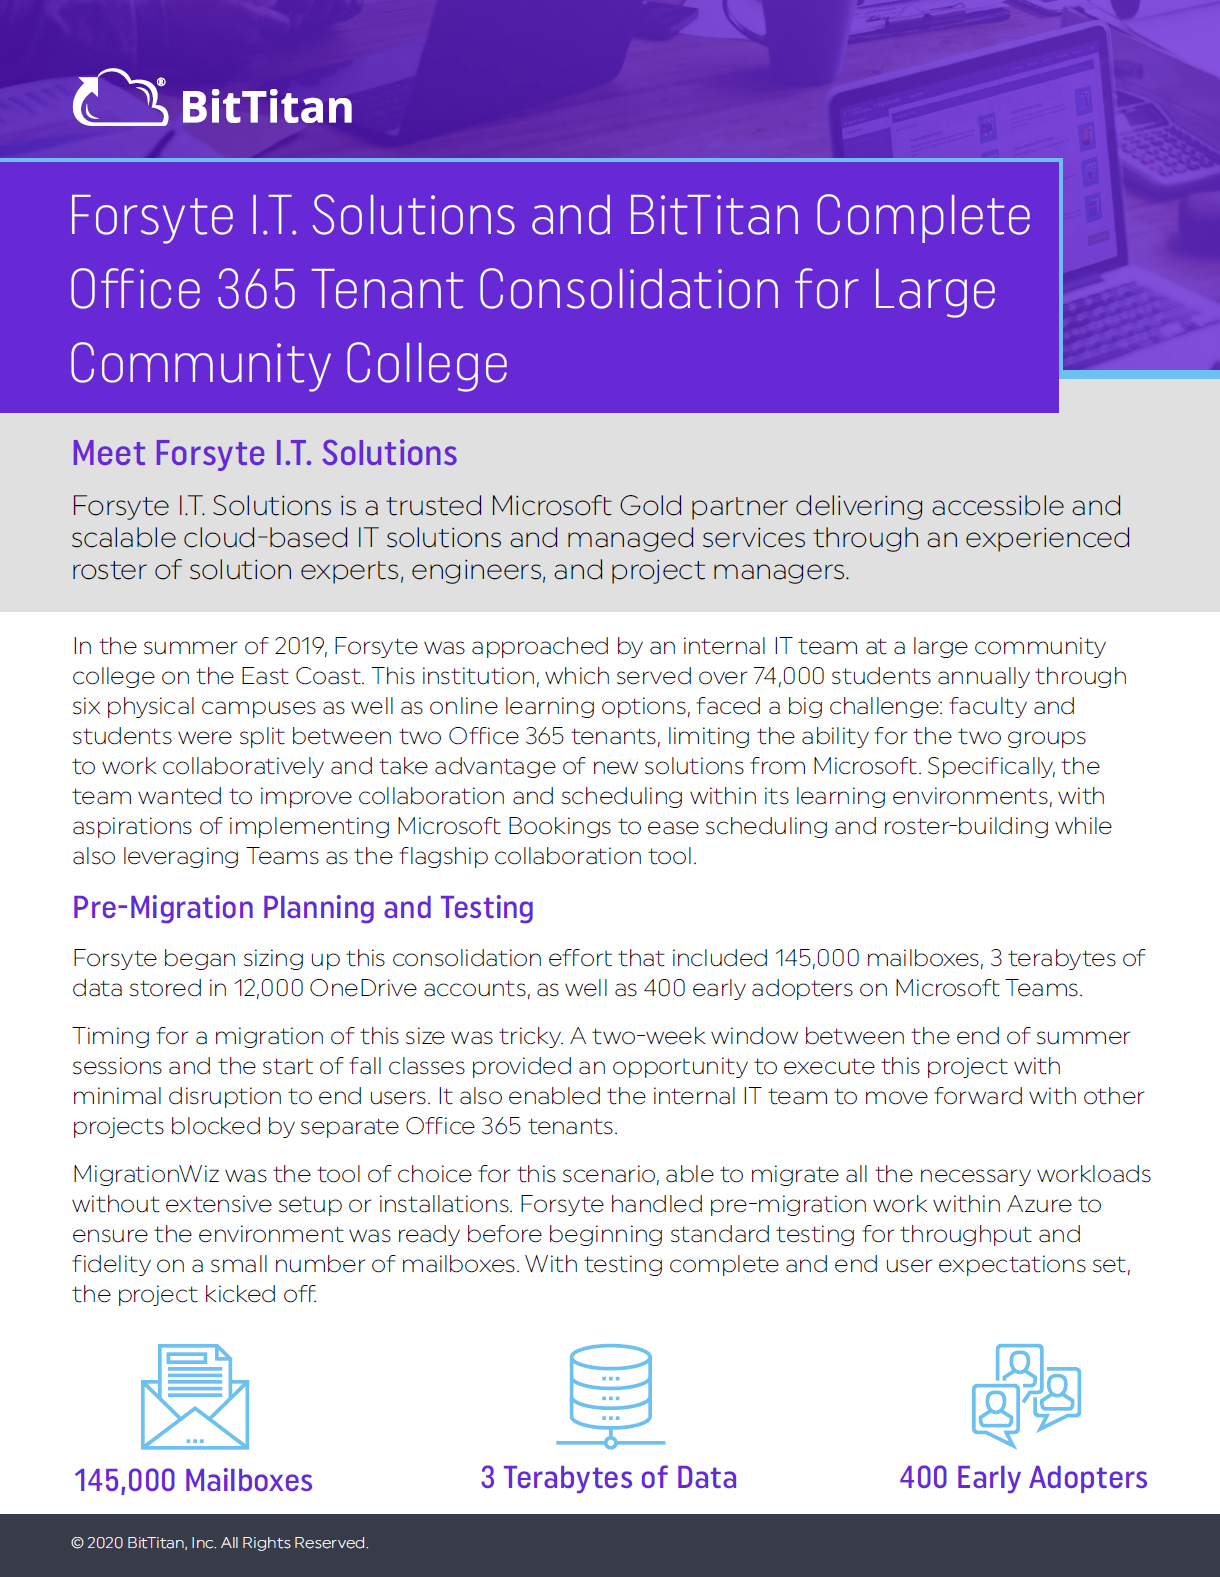 Forsyte I.T. Solutions and BitTitan Complete Office 365 Tenant Consolidation for Large Community College